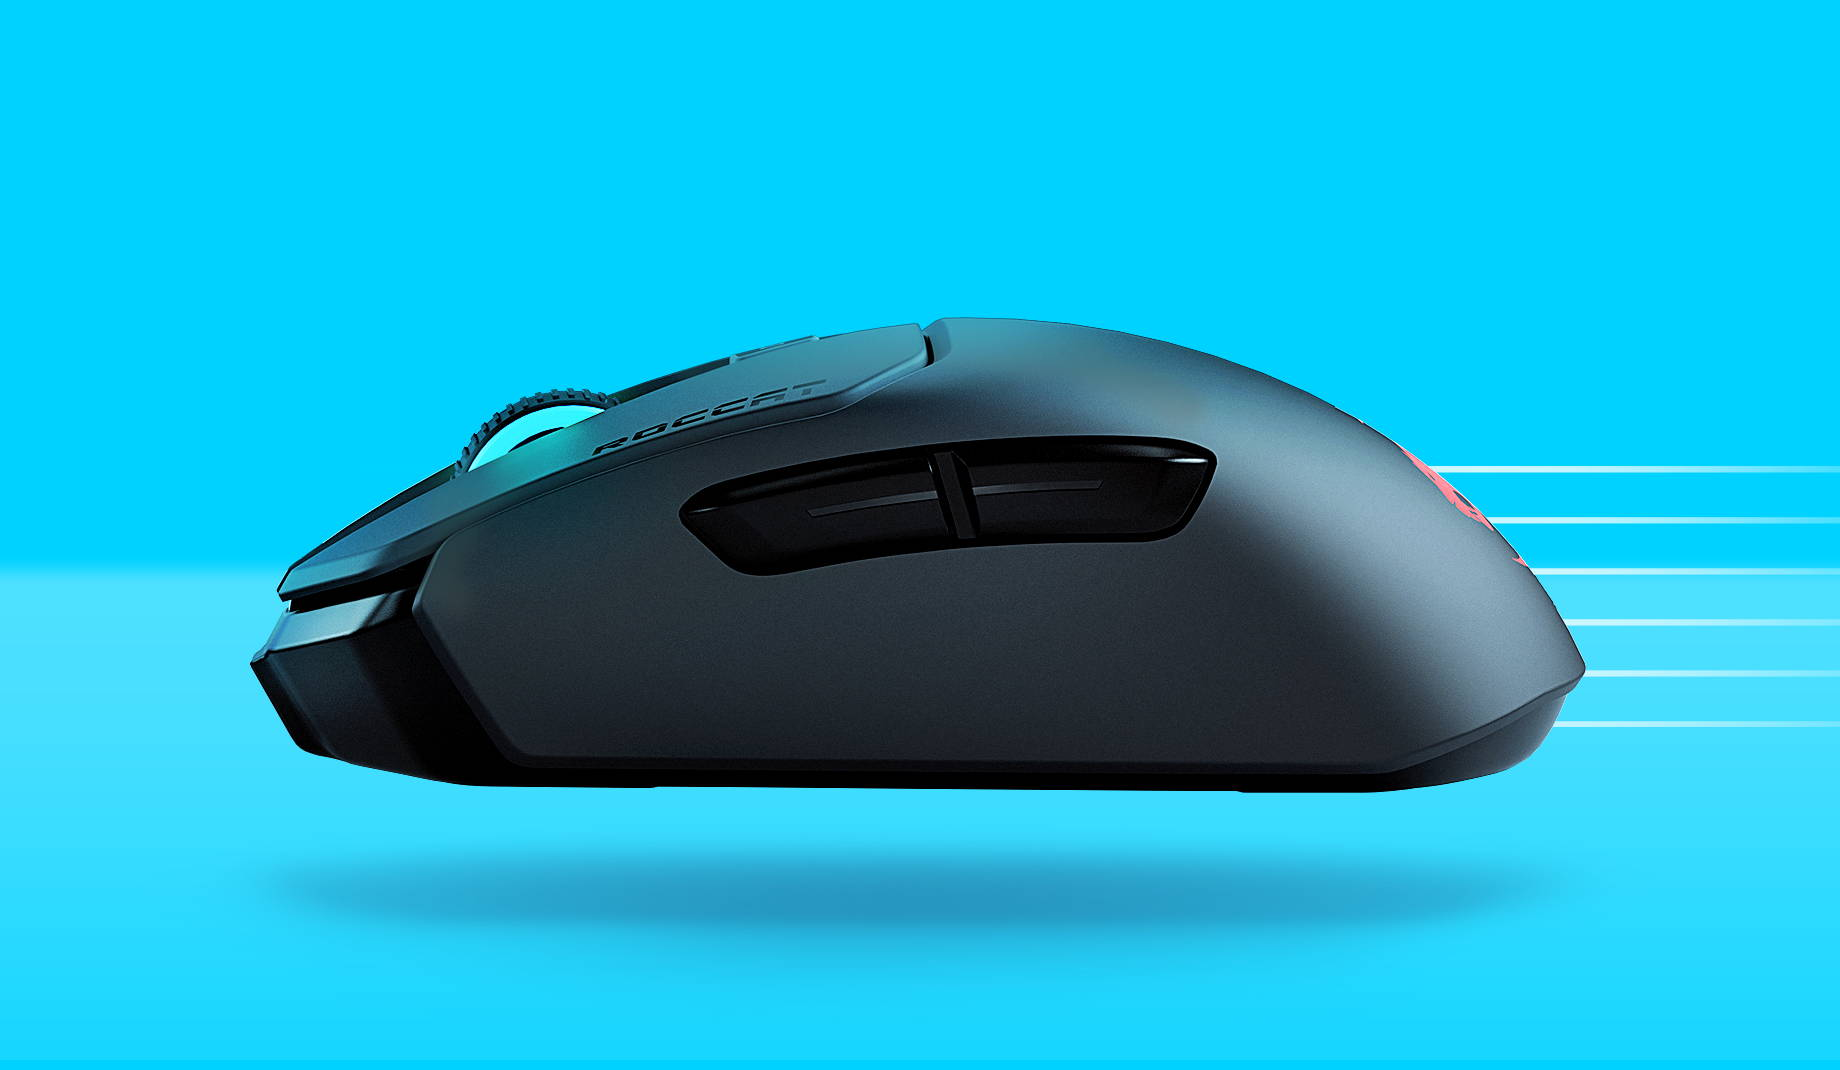 ROCCAT Kain Wireless Mouse